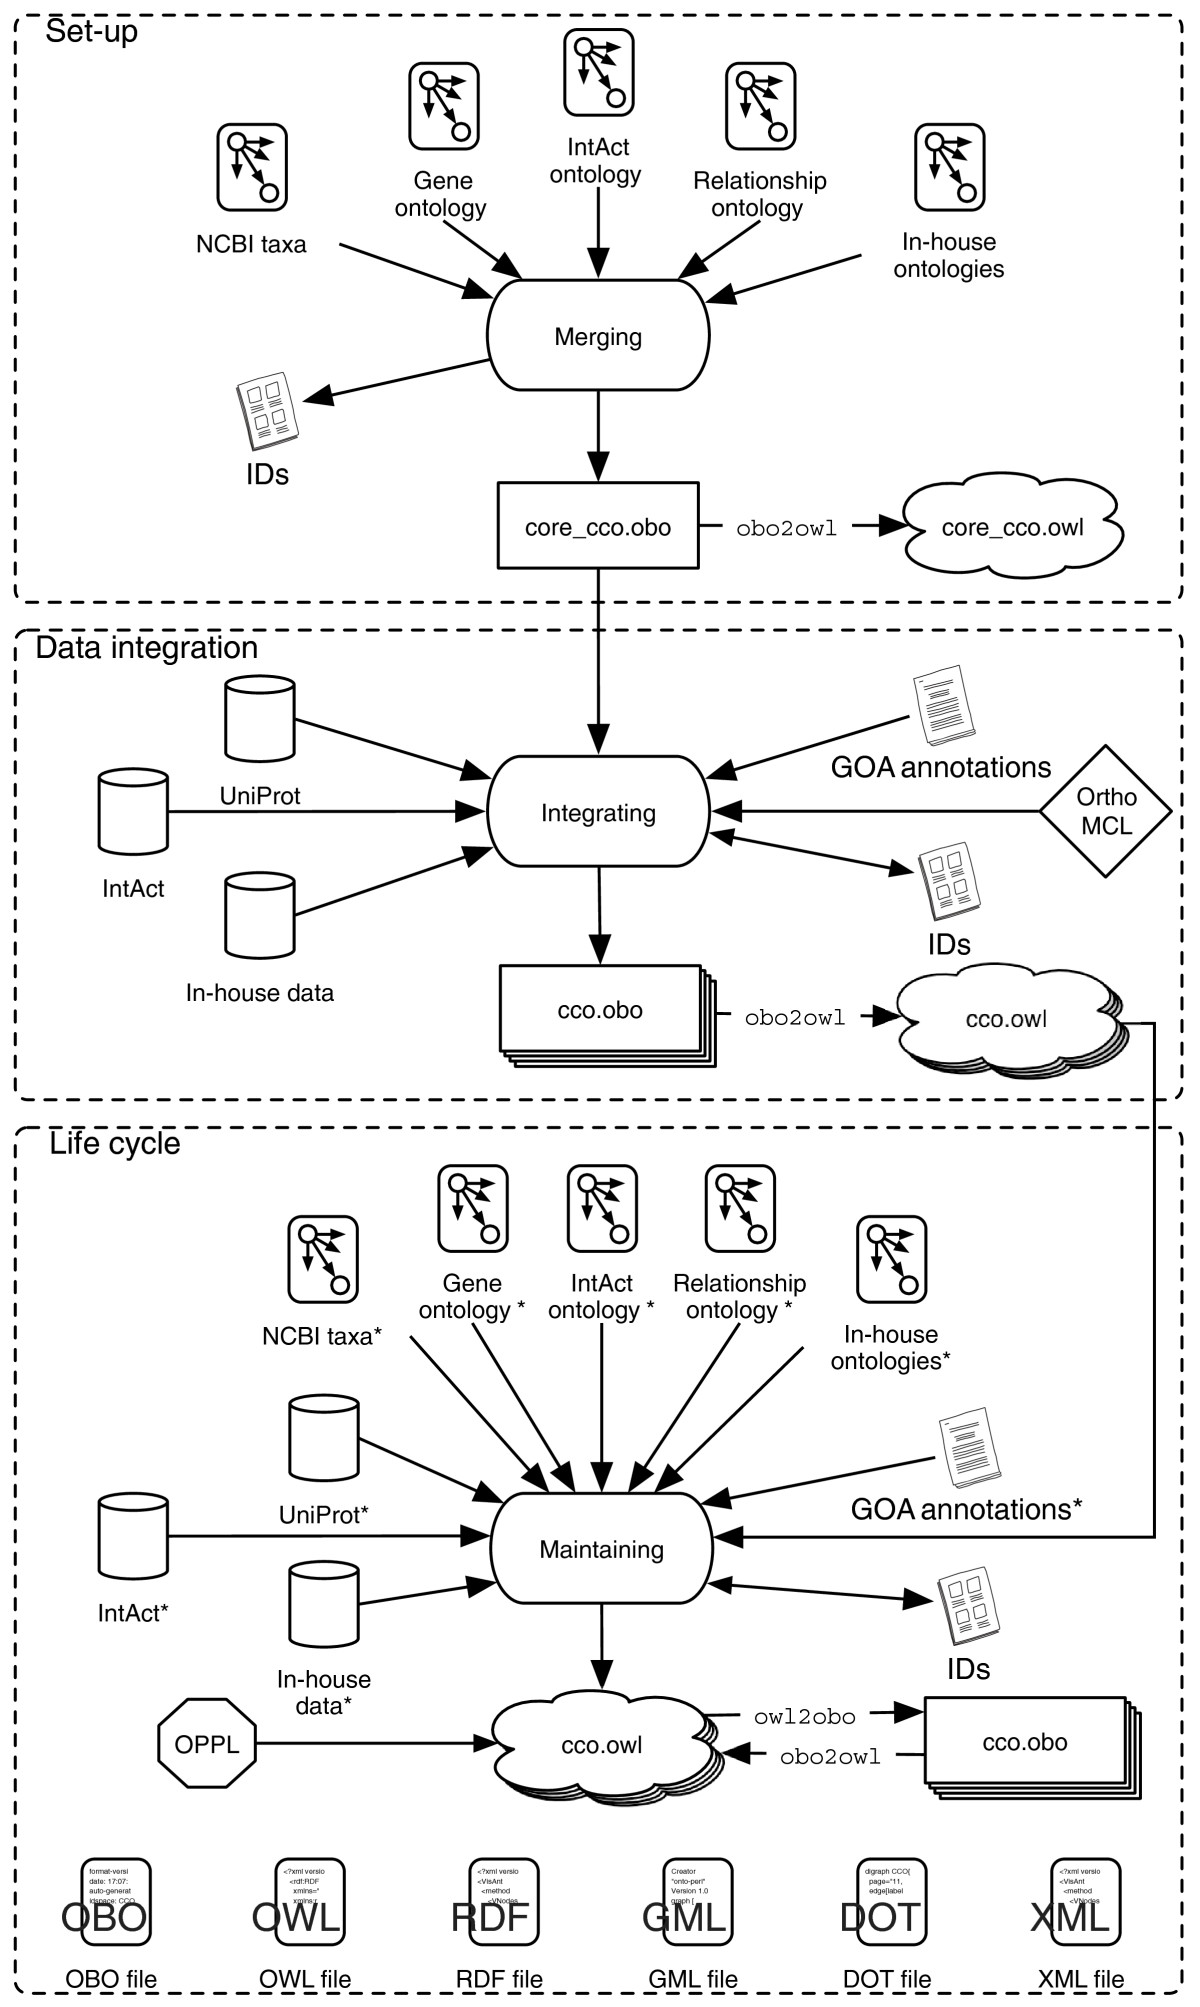 https://static-content.springer.com/image/art%3A10.1186%2Fgb-2009-10-5-r58/MediaObjects/13059_2008_Article_2208_Fig6_HTML.jpg